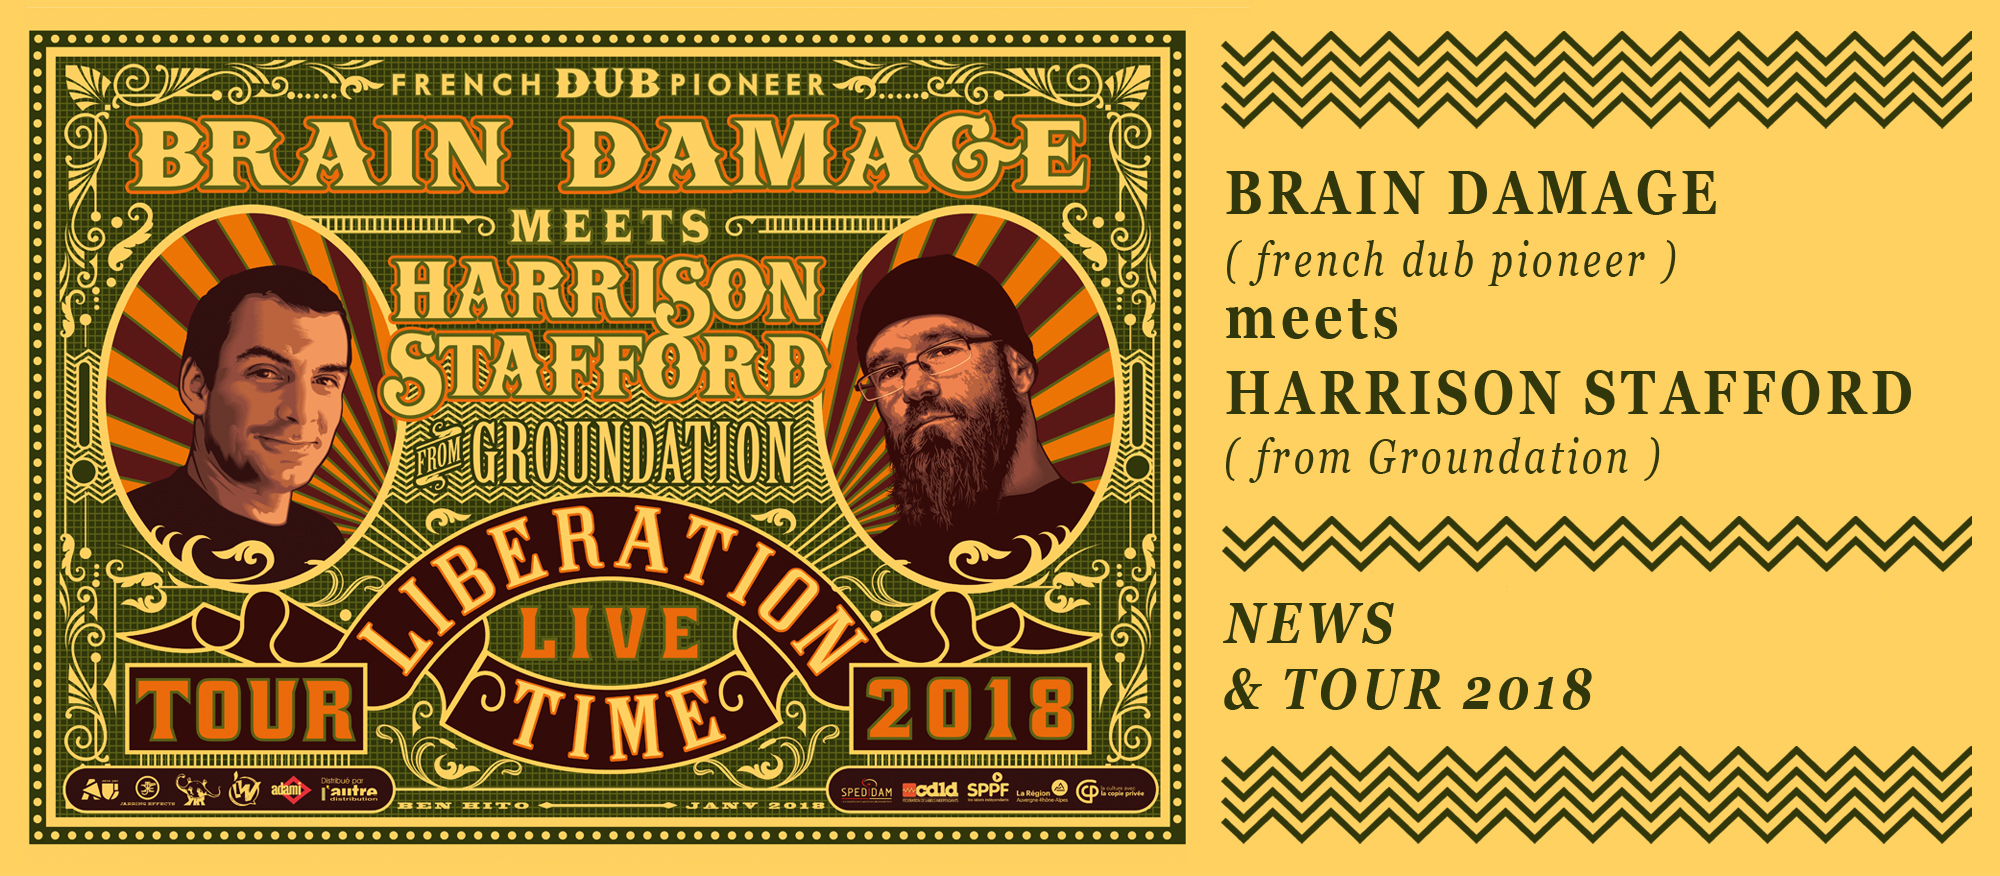 Brain Damage meets Harrison Stafford 2018 news and tour